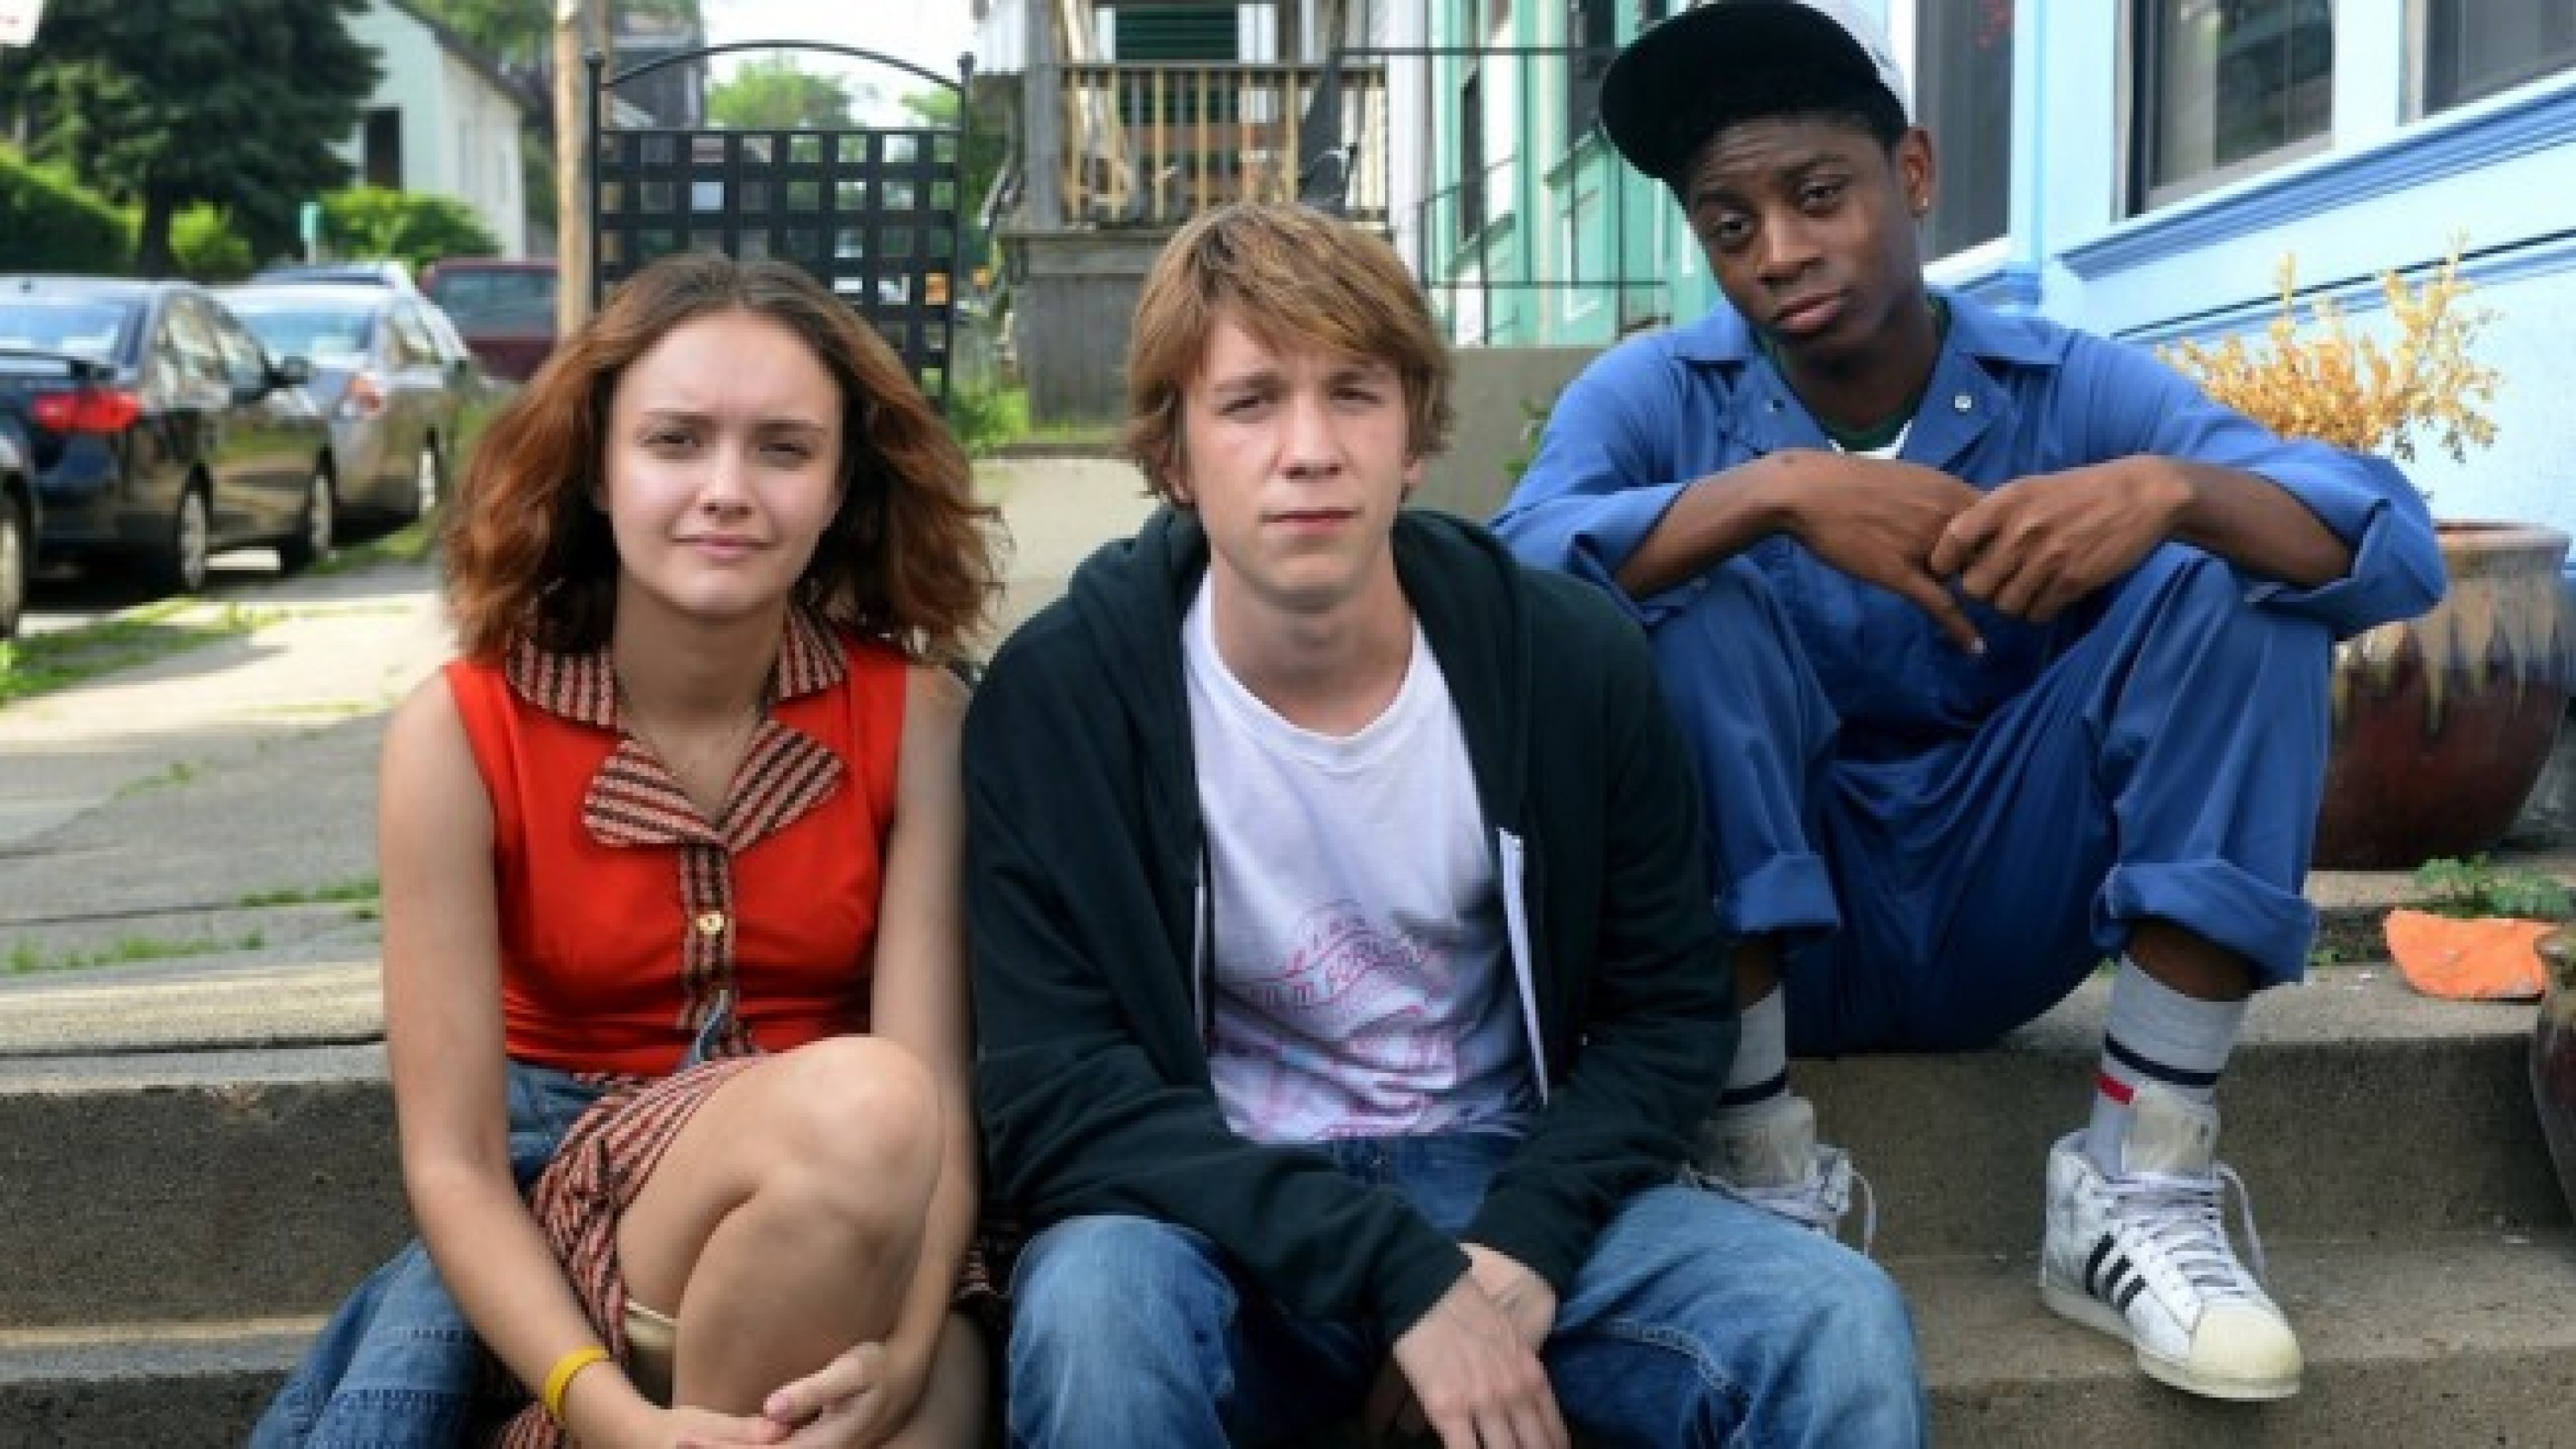 Still from Me and Earl and the Dying Girl